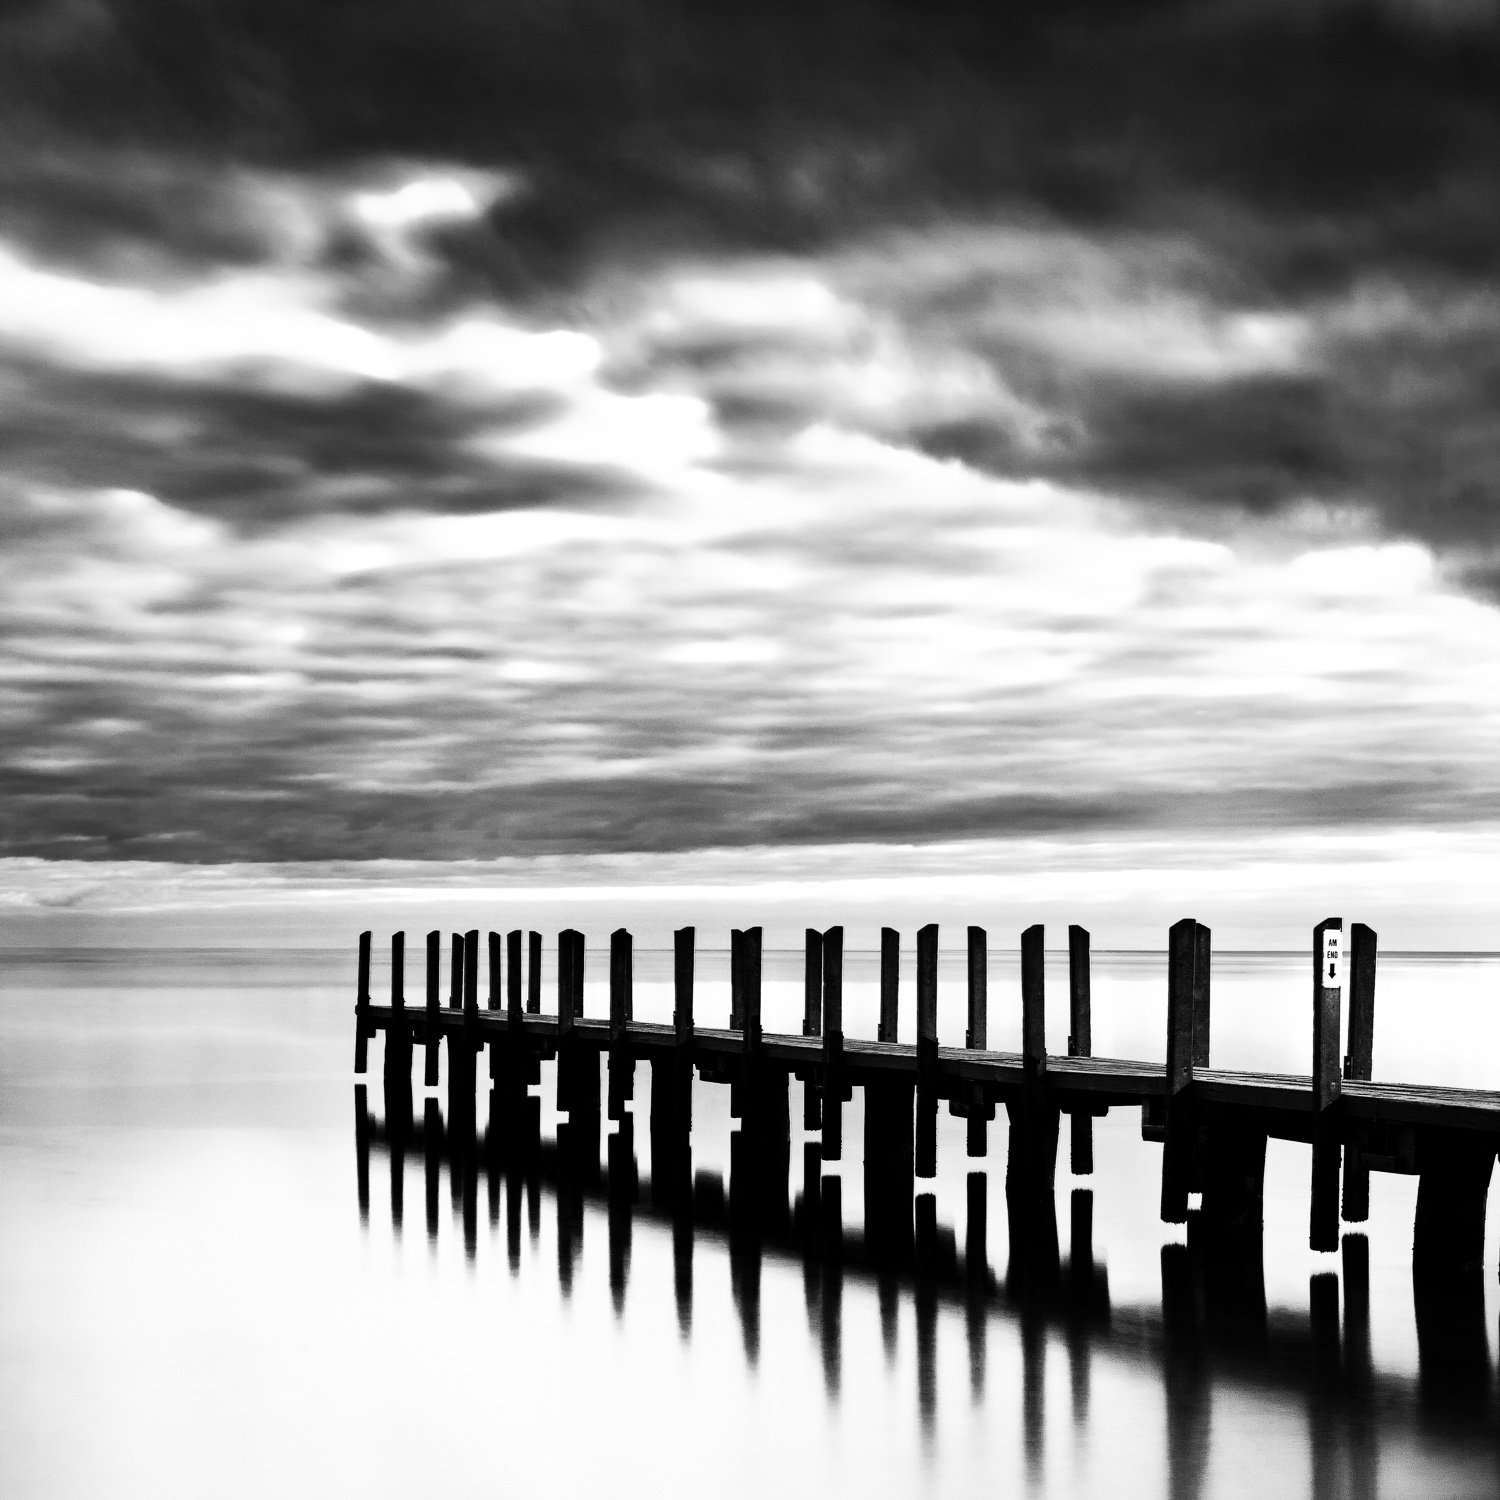 Ponder_Quindalup-Boat-Ramp_Dunsborough_South-West_WA_Black and White